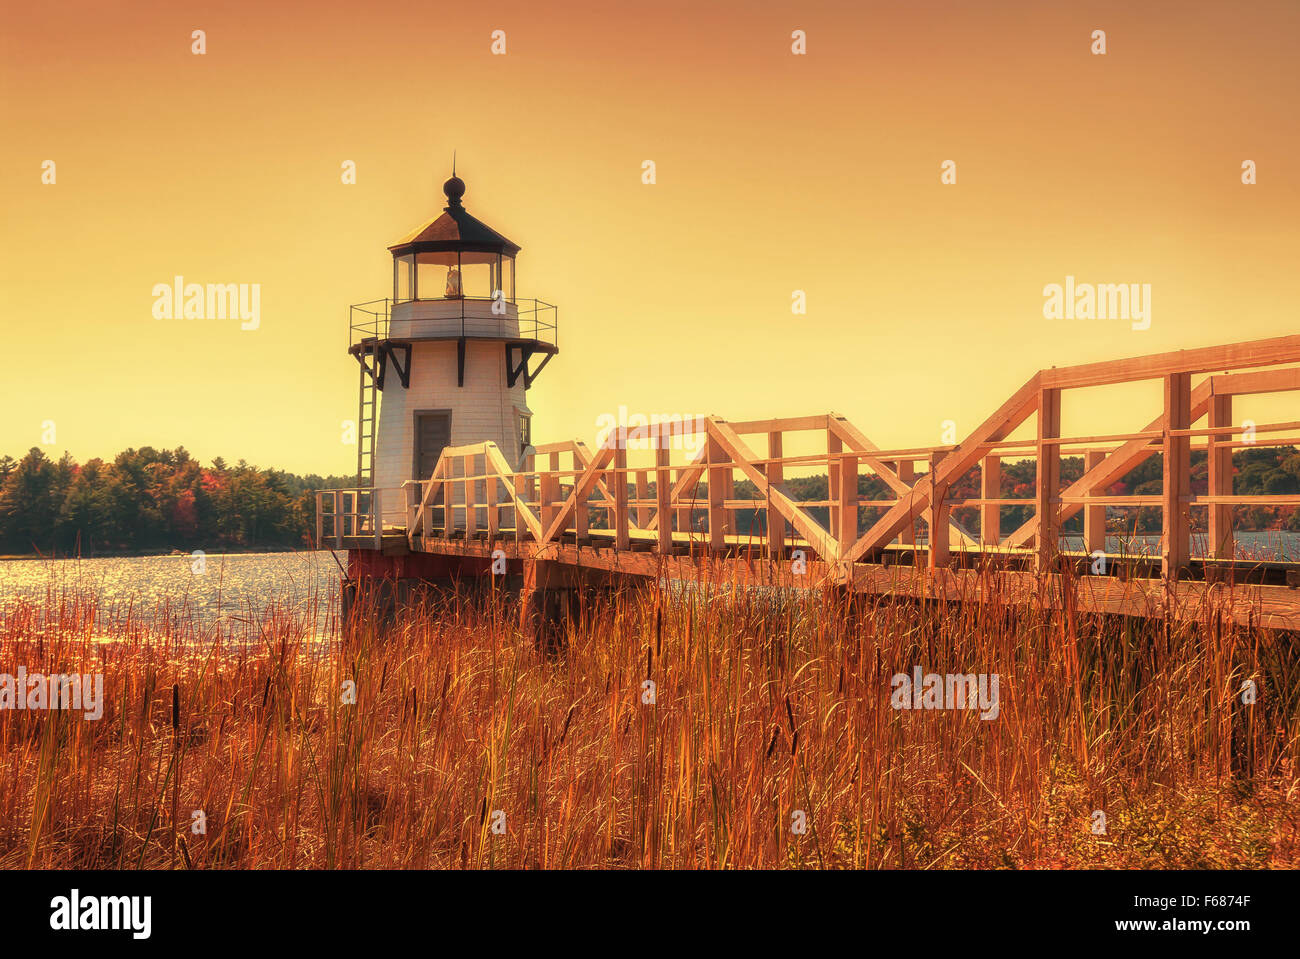 Doubling Point Lighthouse on the Kennebeck River in coastal New England - Stock Image